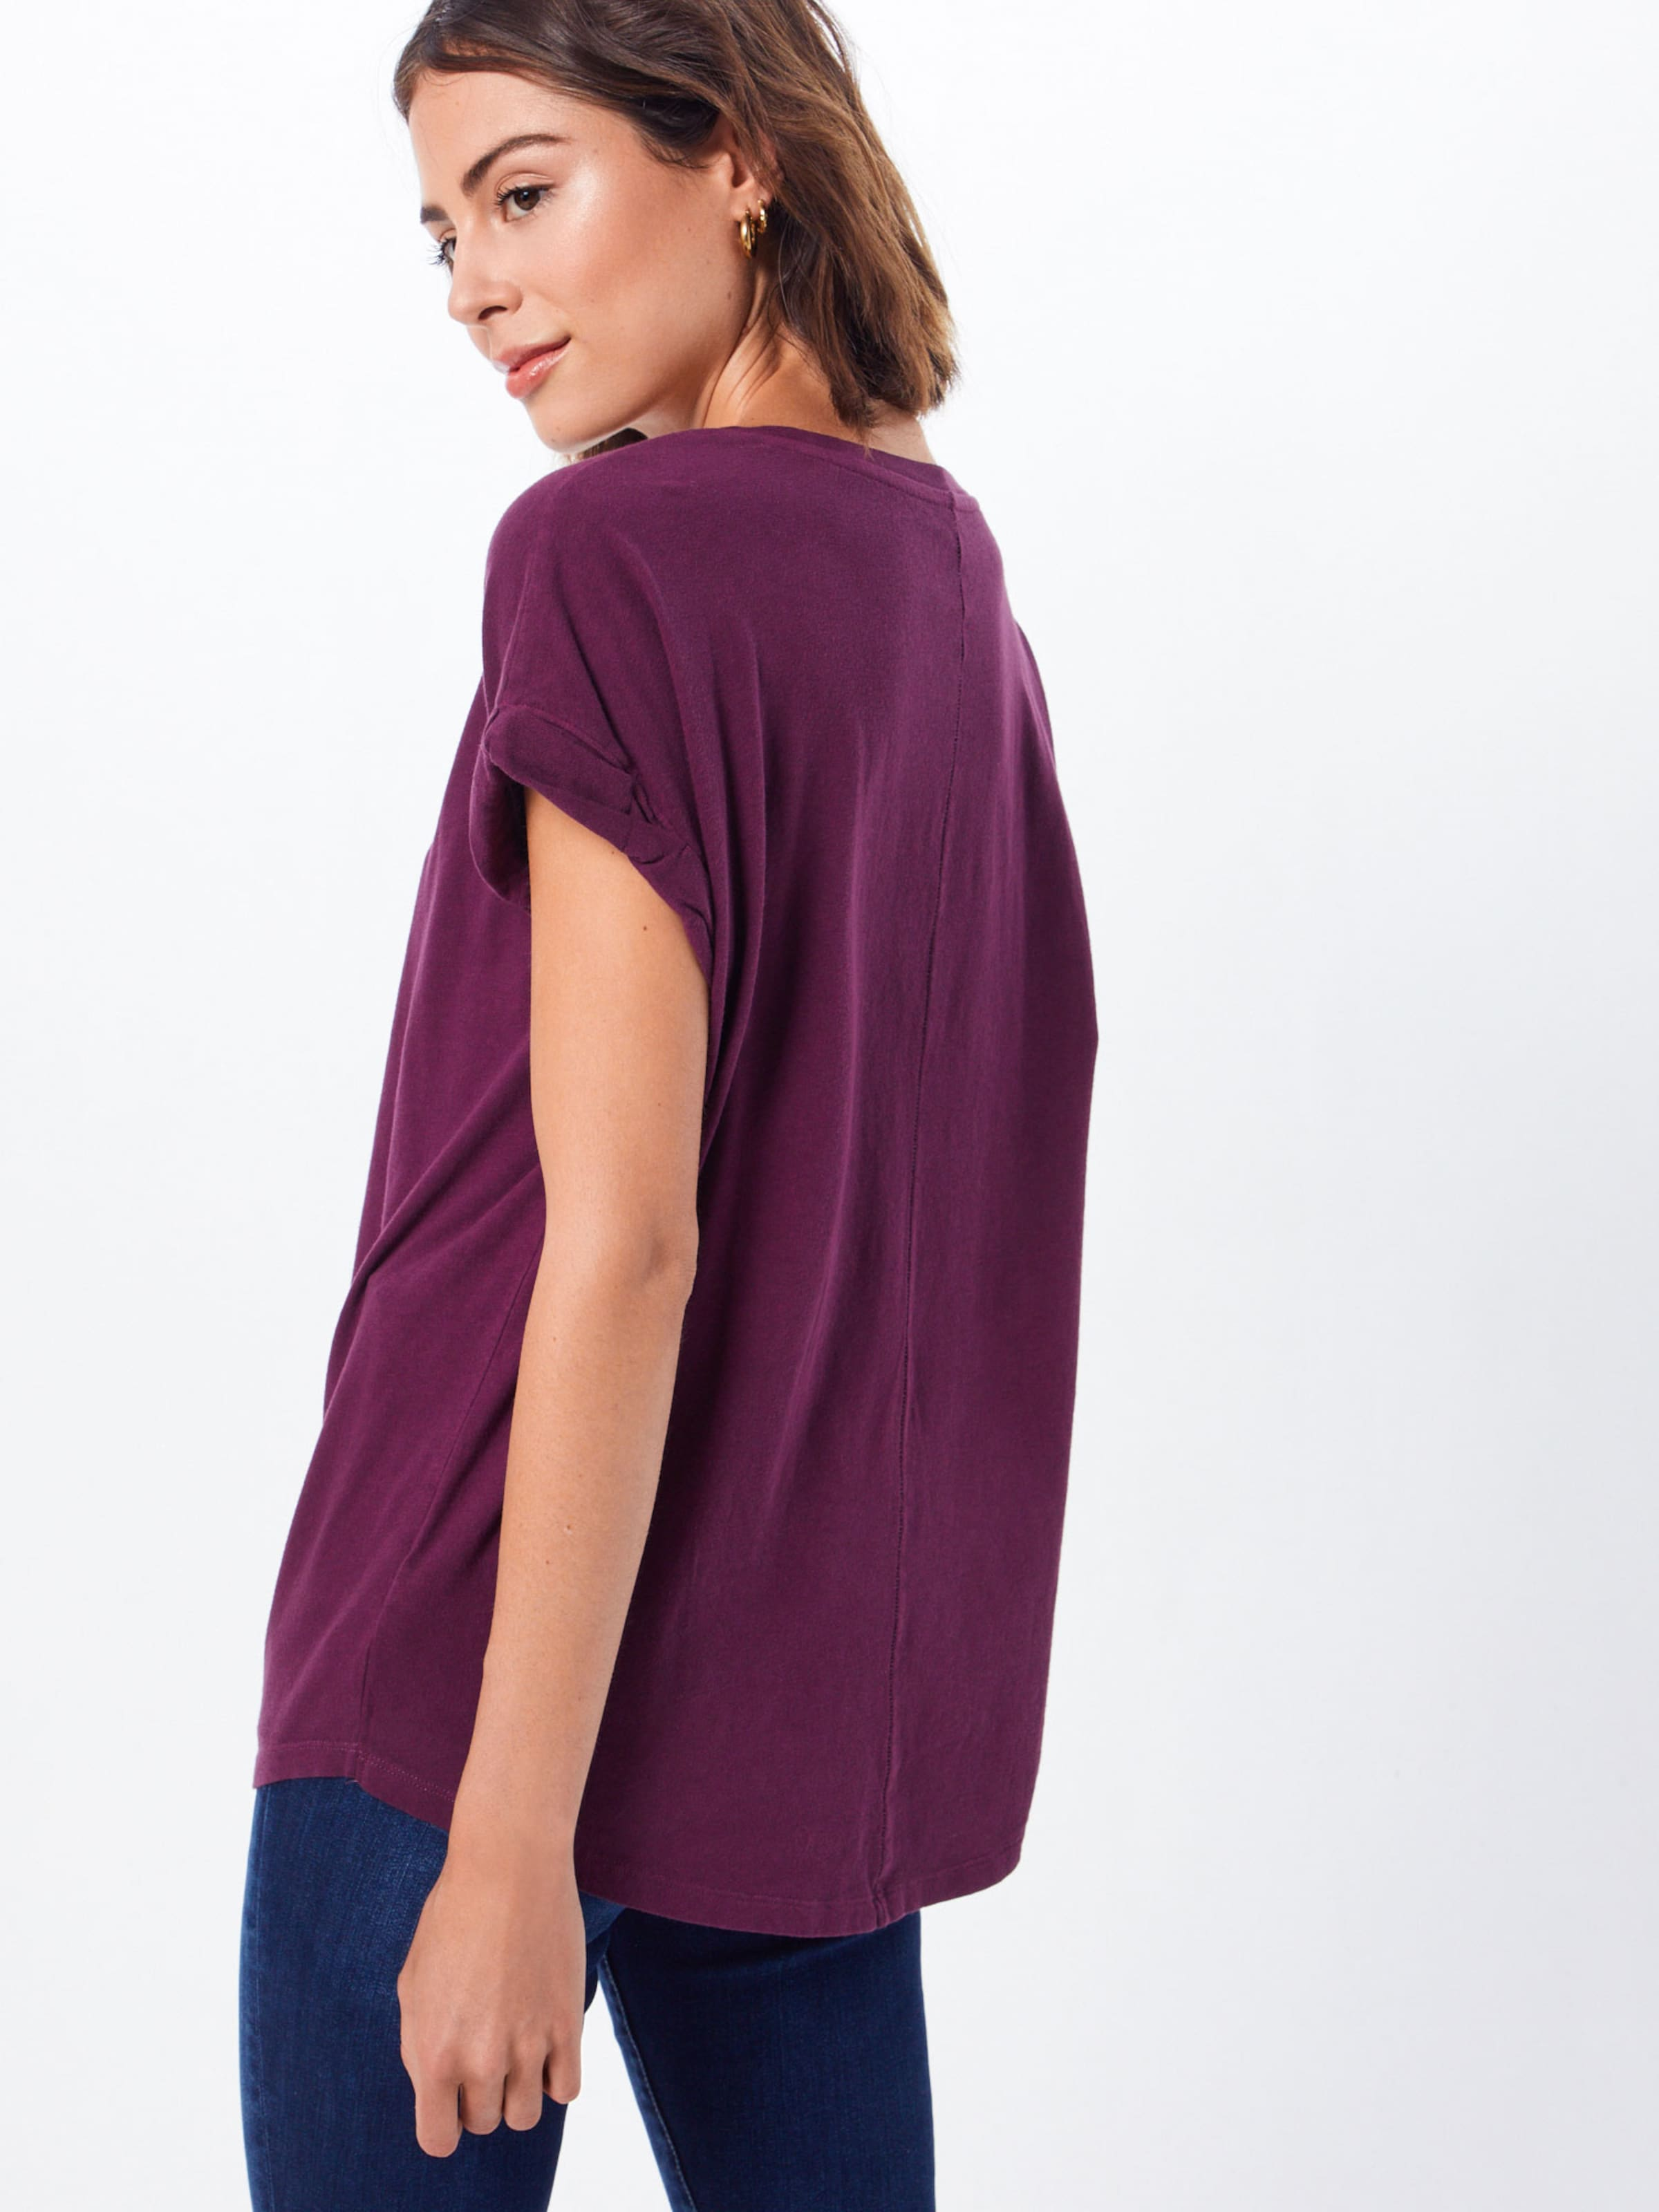 Tee' In Shirt Auth Pflaume 'ss Roll Slv Gap QdChtxsr